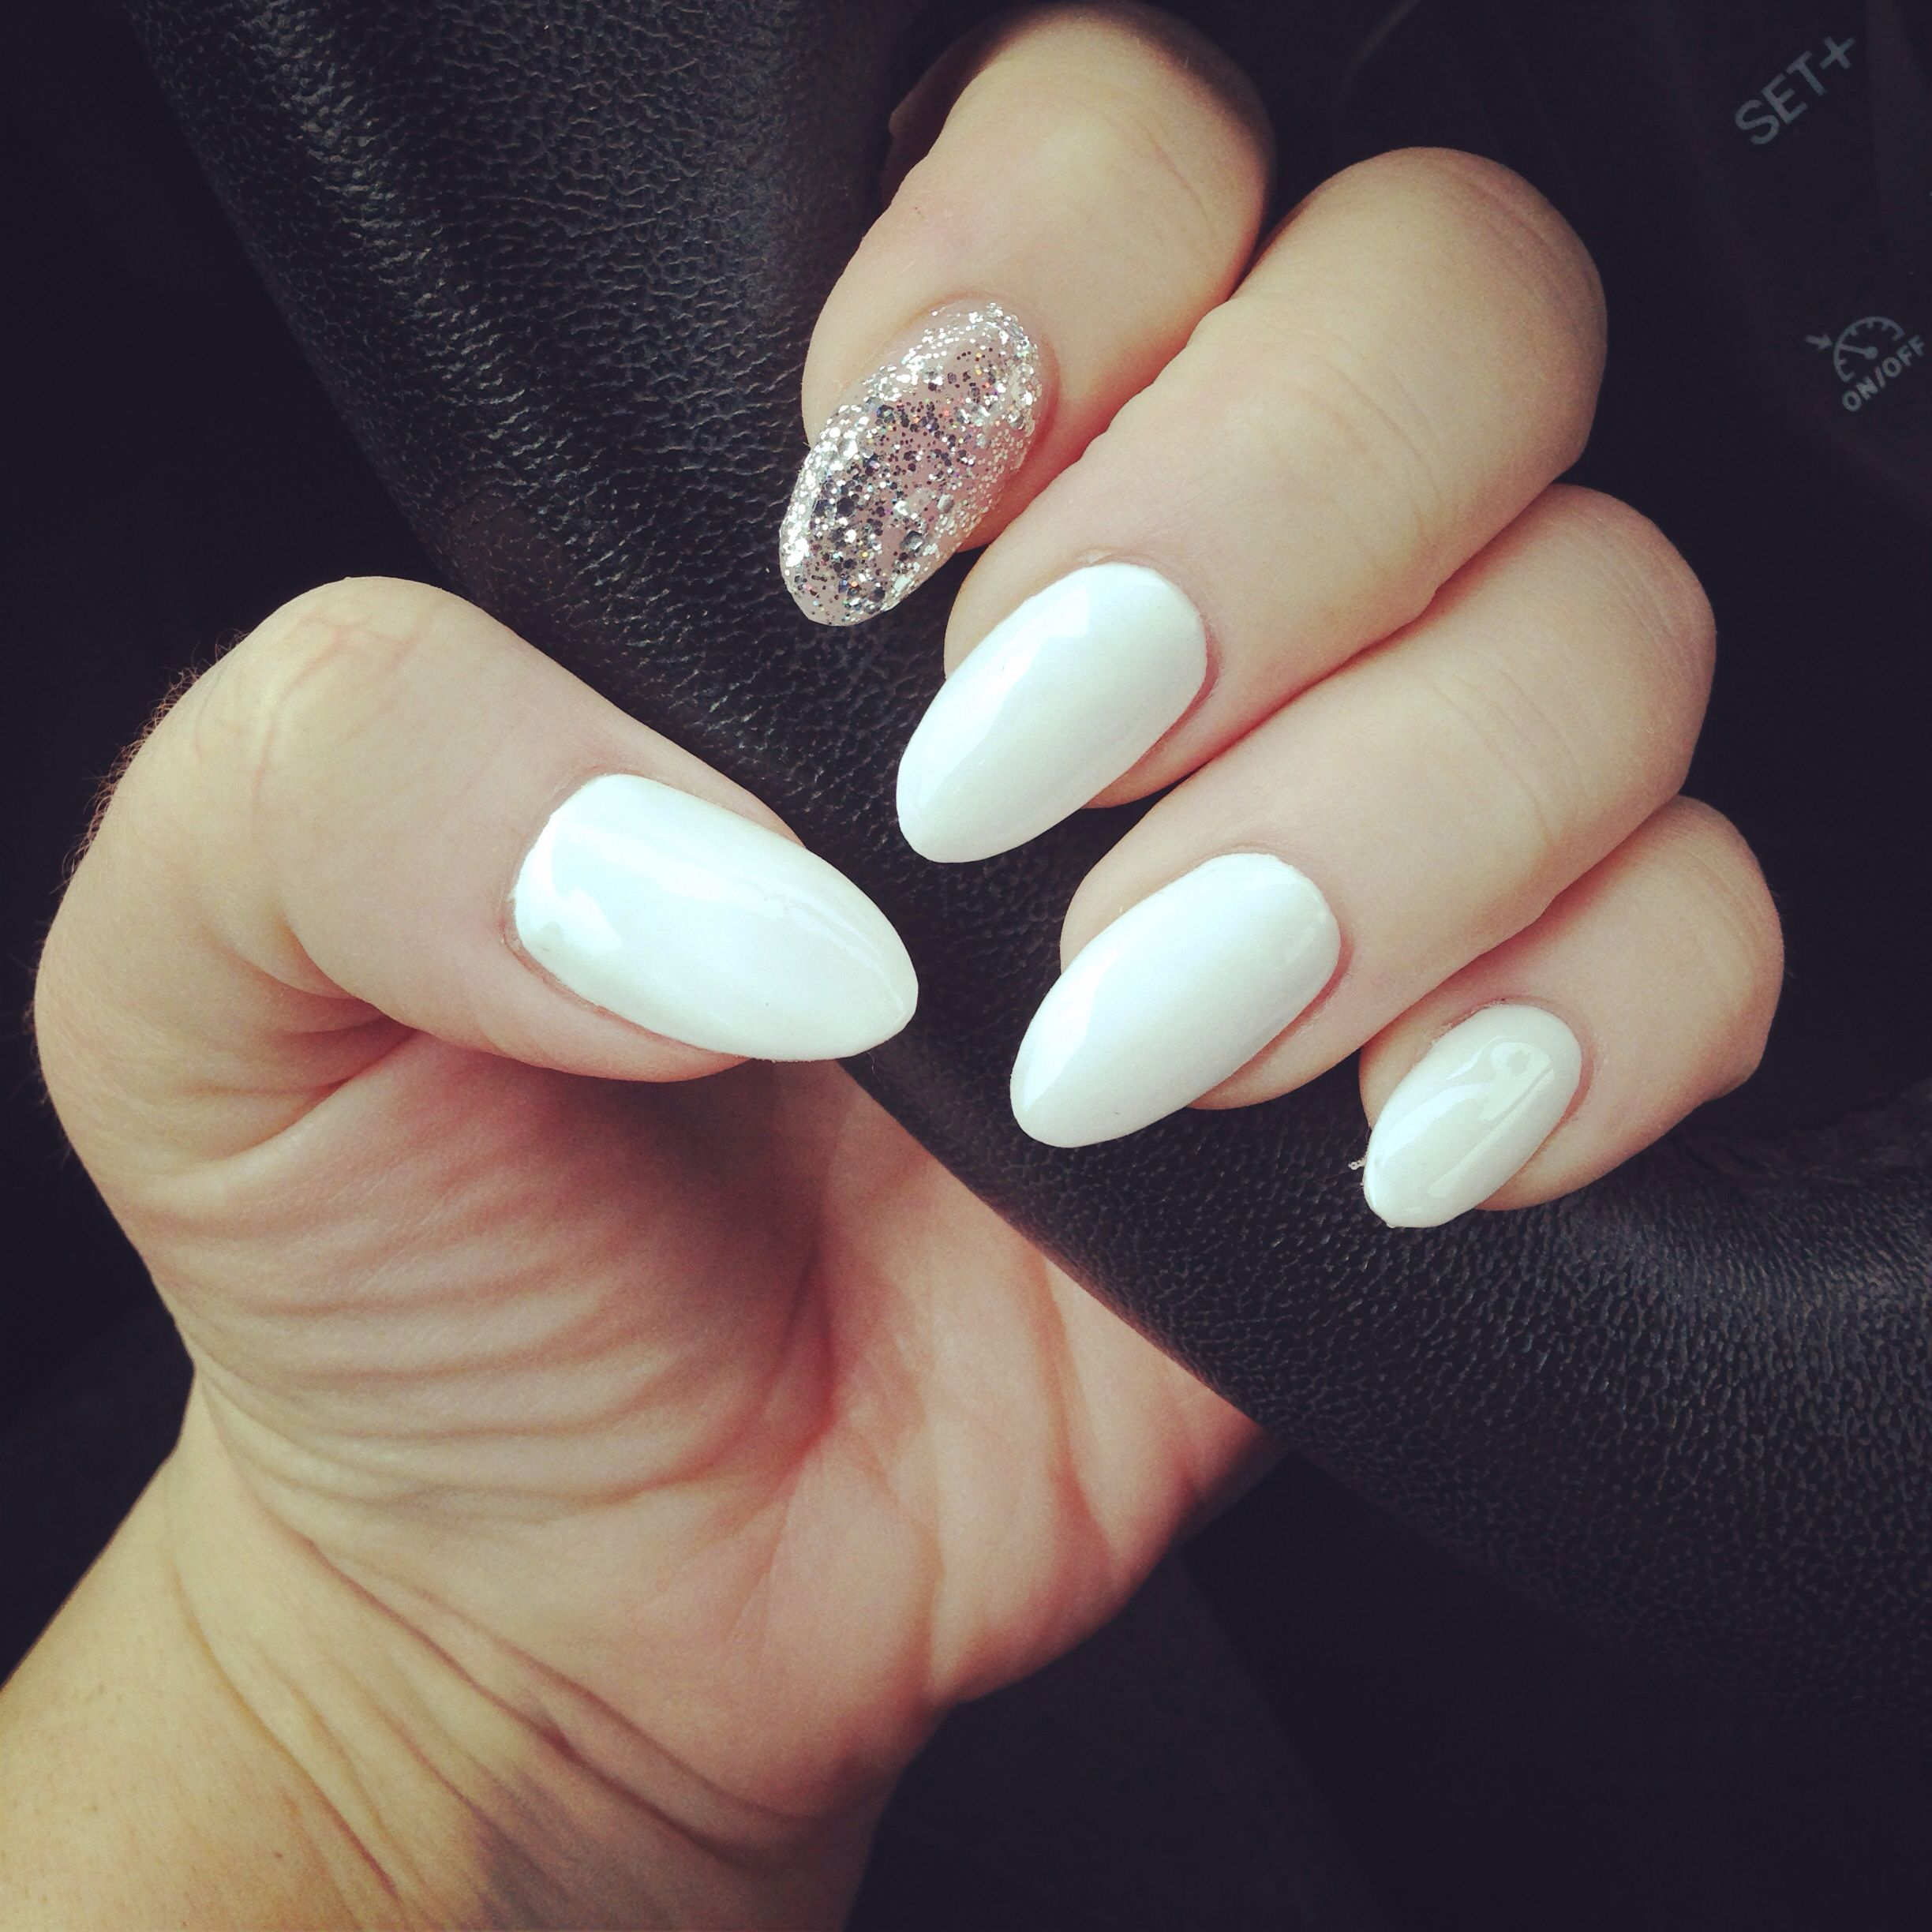 Pin By Heather Berg On My Nails Prom Nails Silver Pretty Nails Glitter White Almond Nails